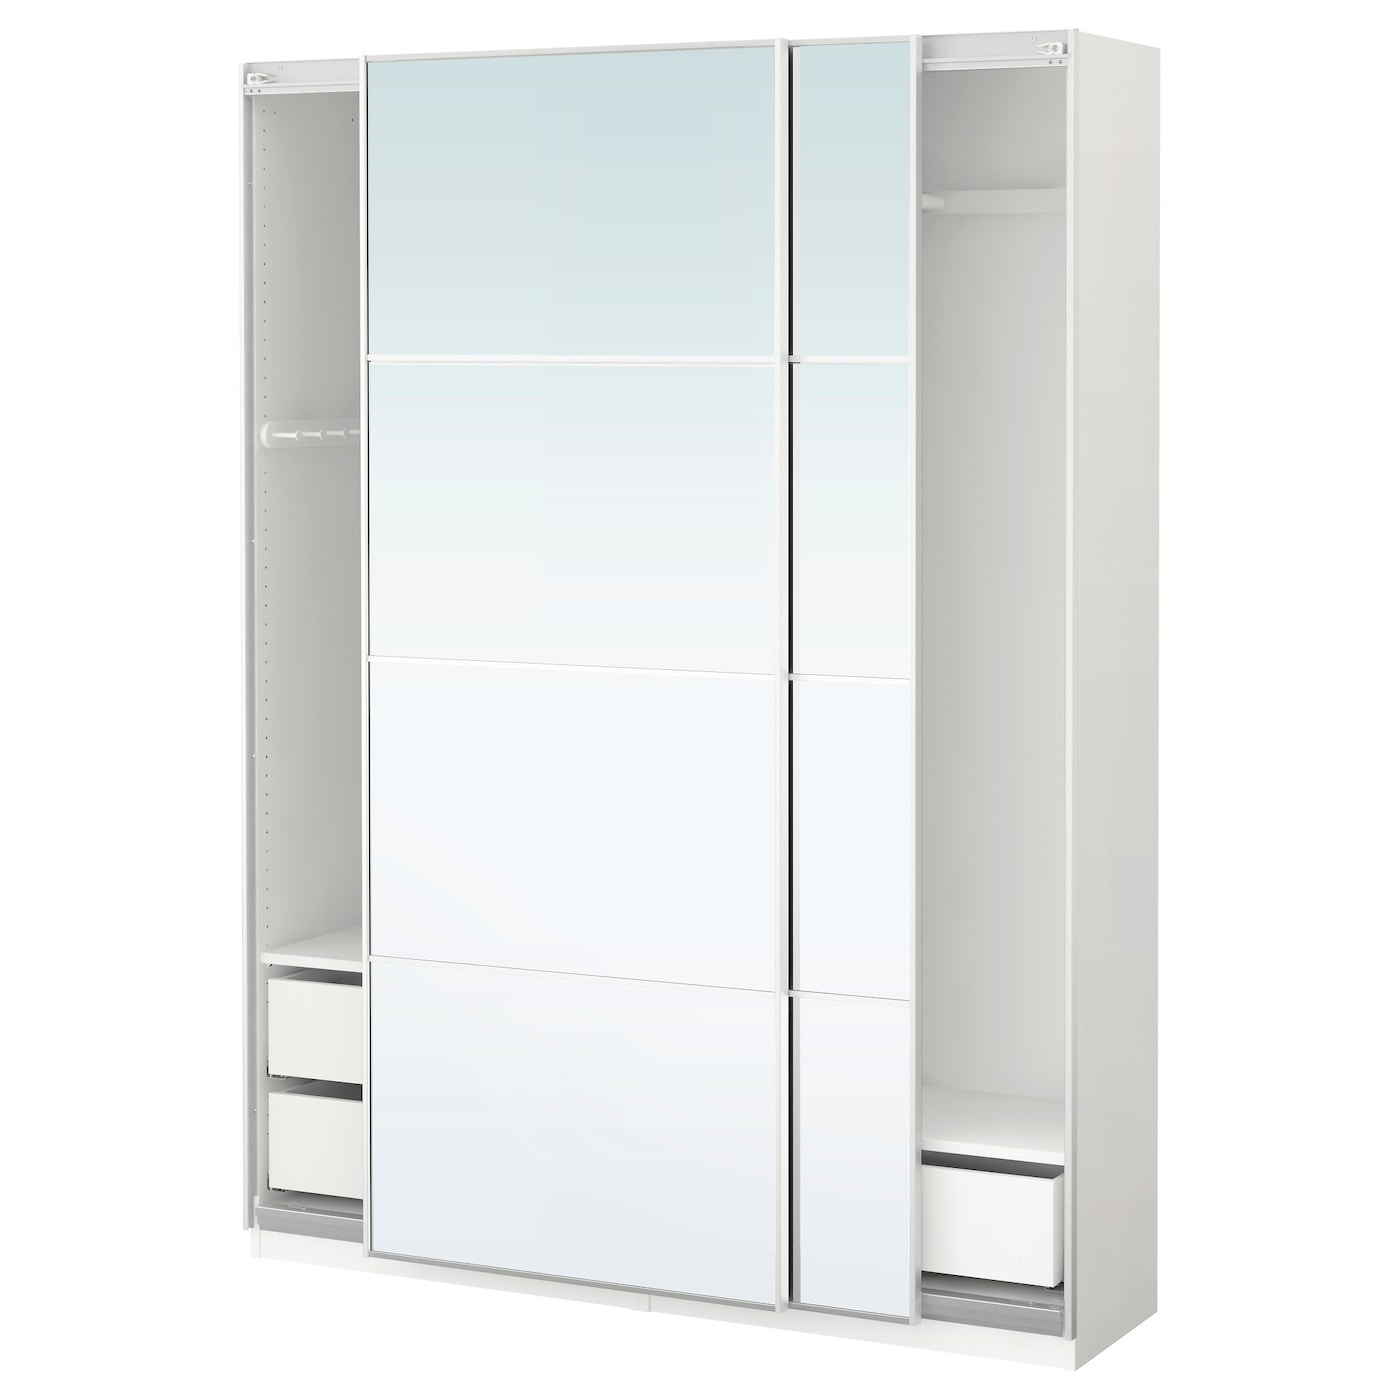 Pax Wardrobe White Auli Mirror Glass 150 X 44 X 201 Cm Ikea